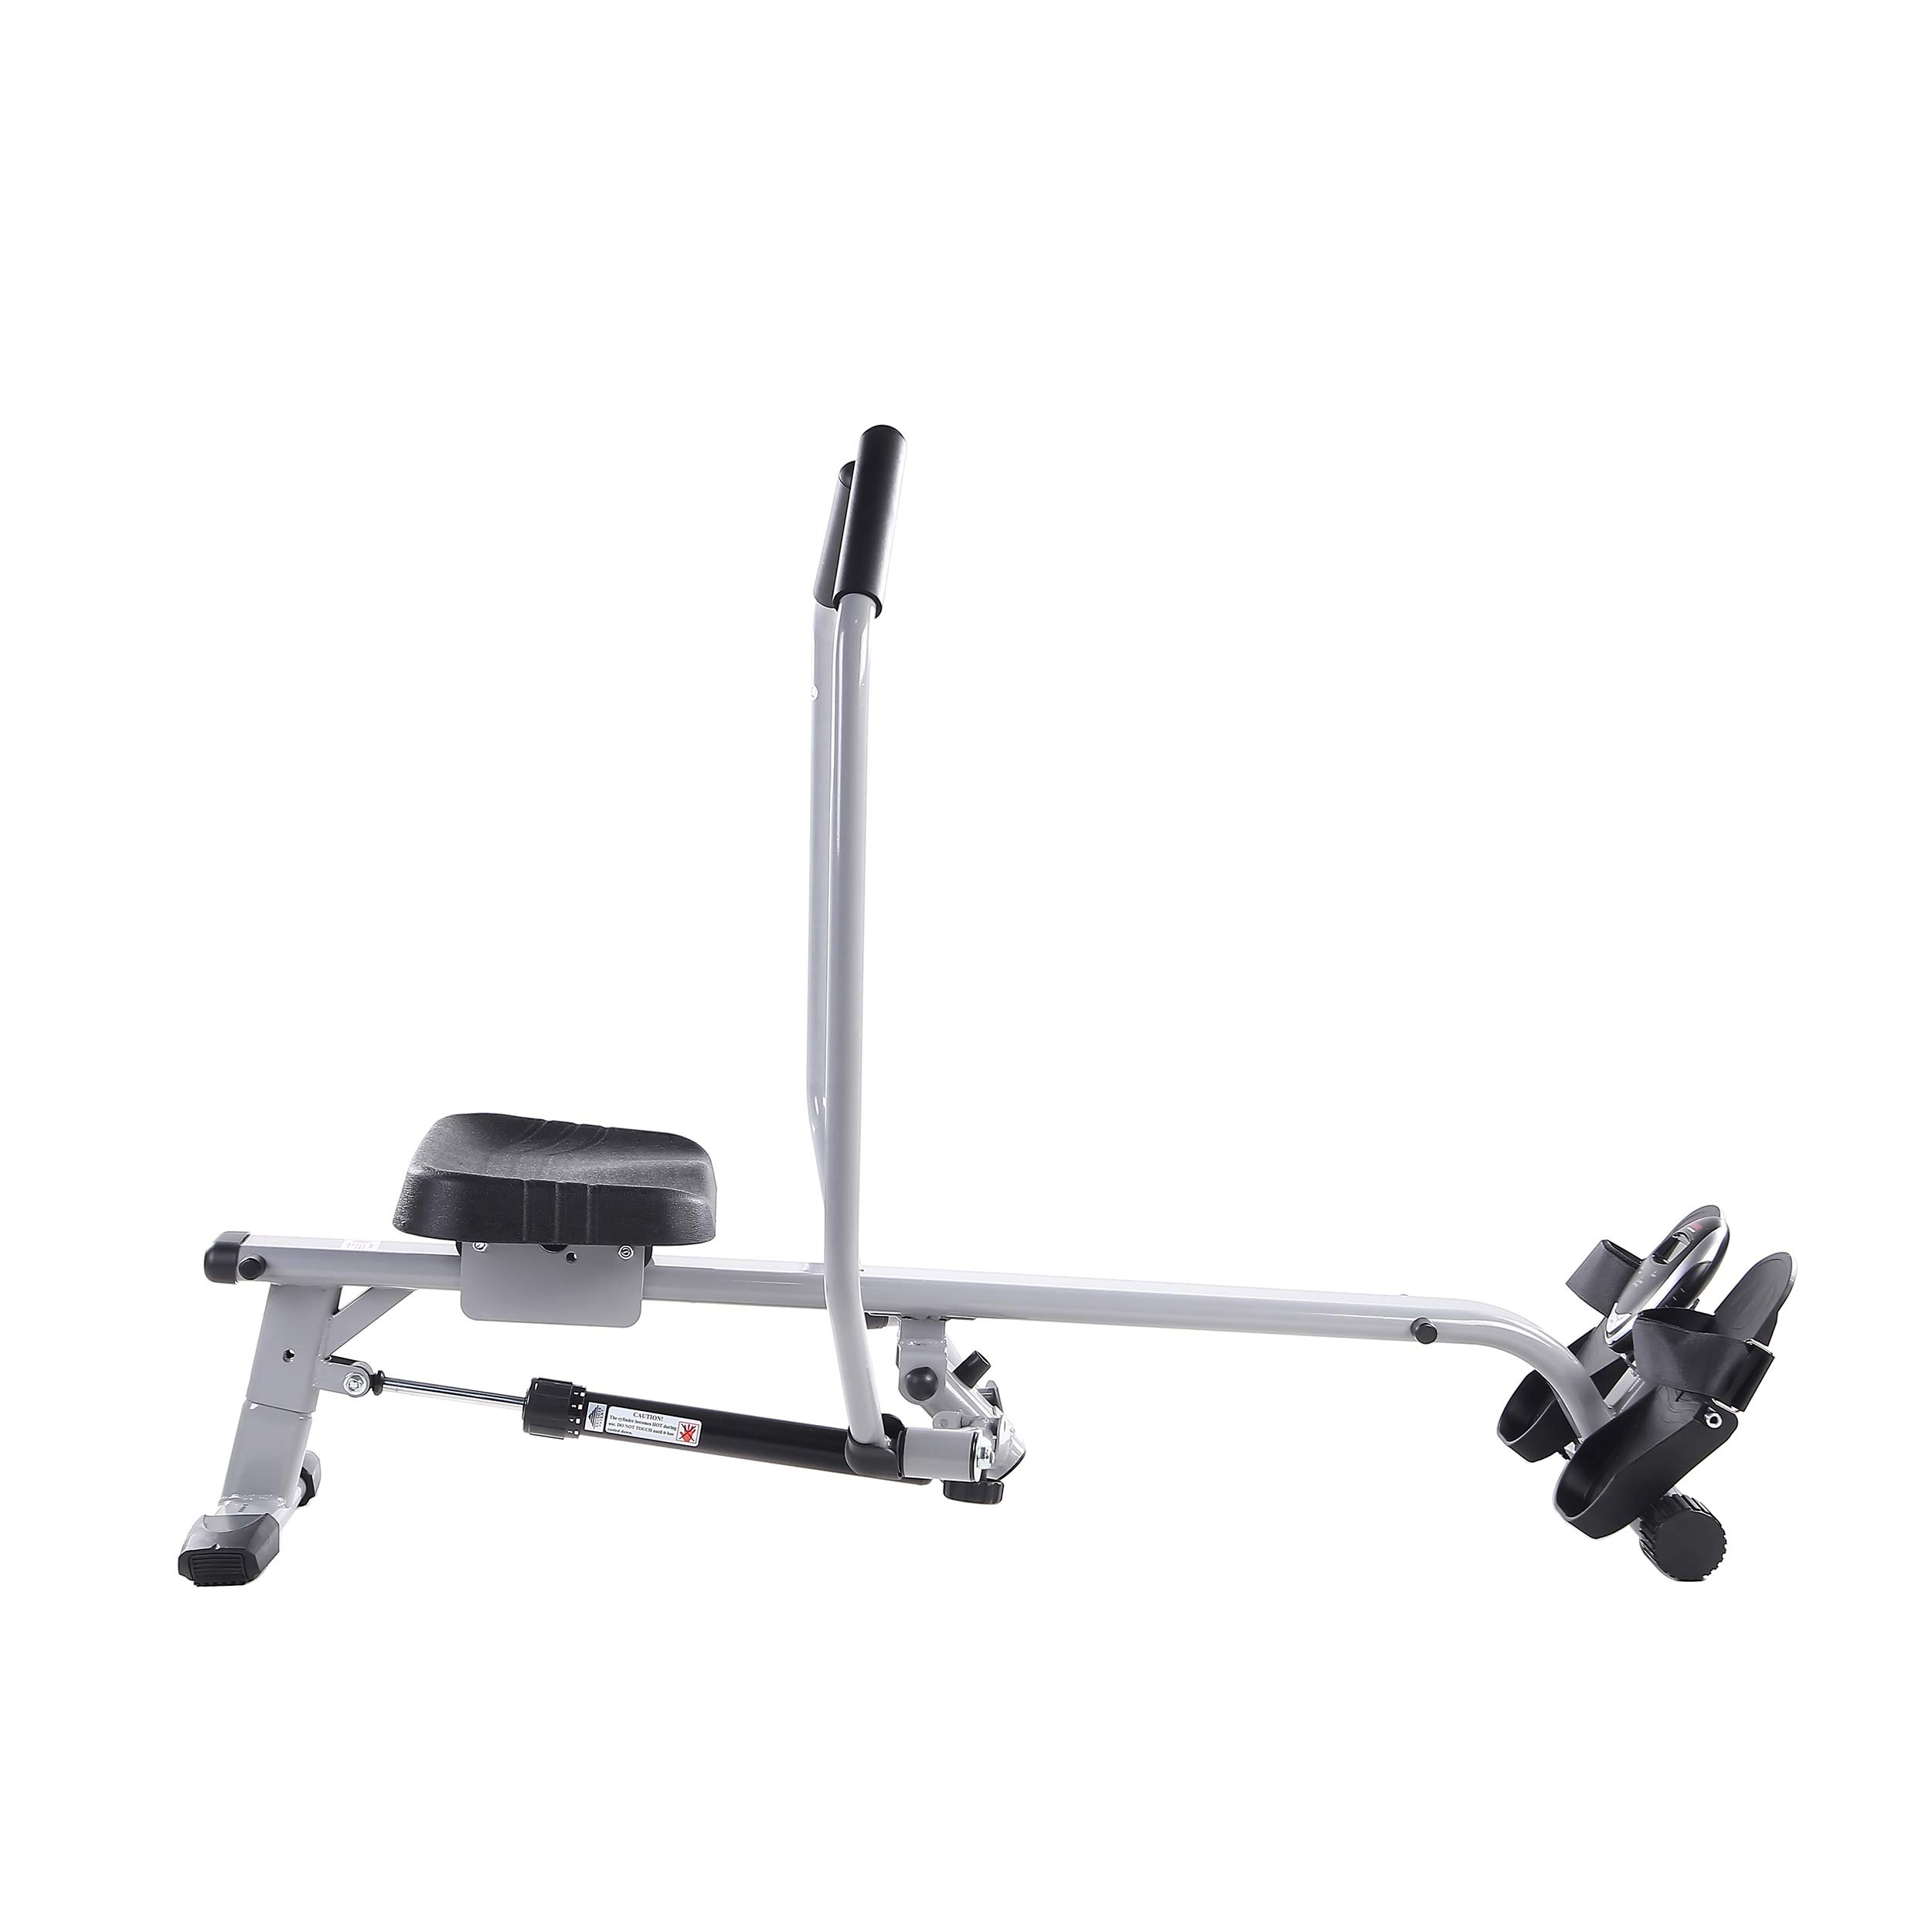 Sunny Health & Fitness SF-RW5639 Full Motion Rowing Machine Rower w/ 350 lb Weight Capacity and LCD Monitor by Sunny Health & Fitness (Image #5)